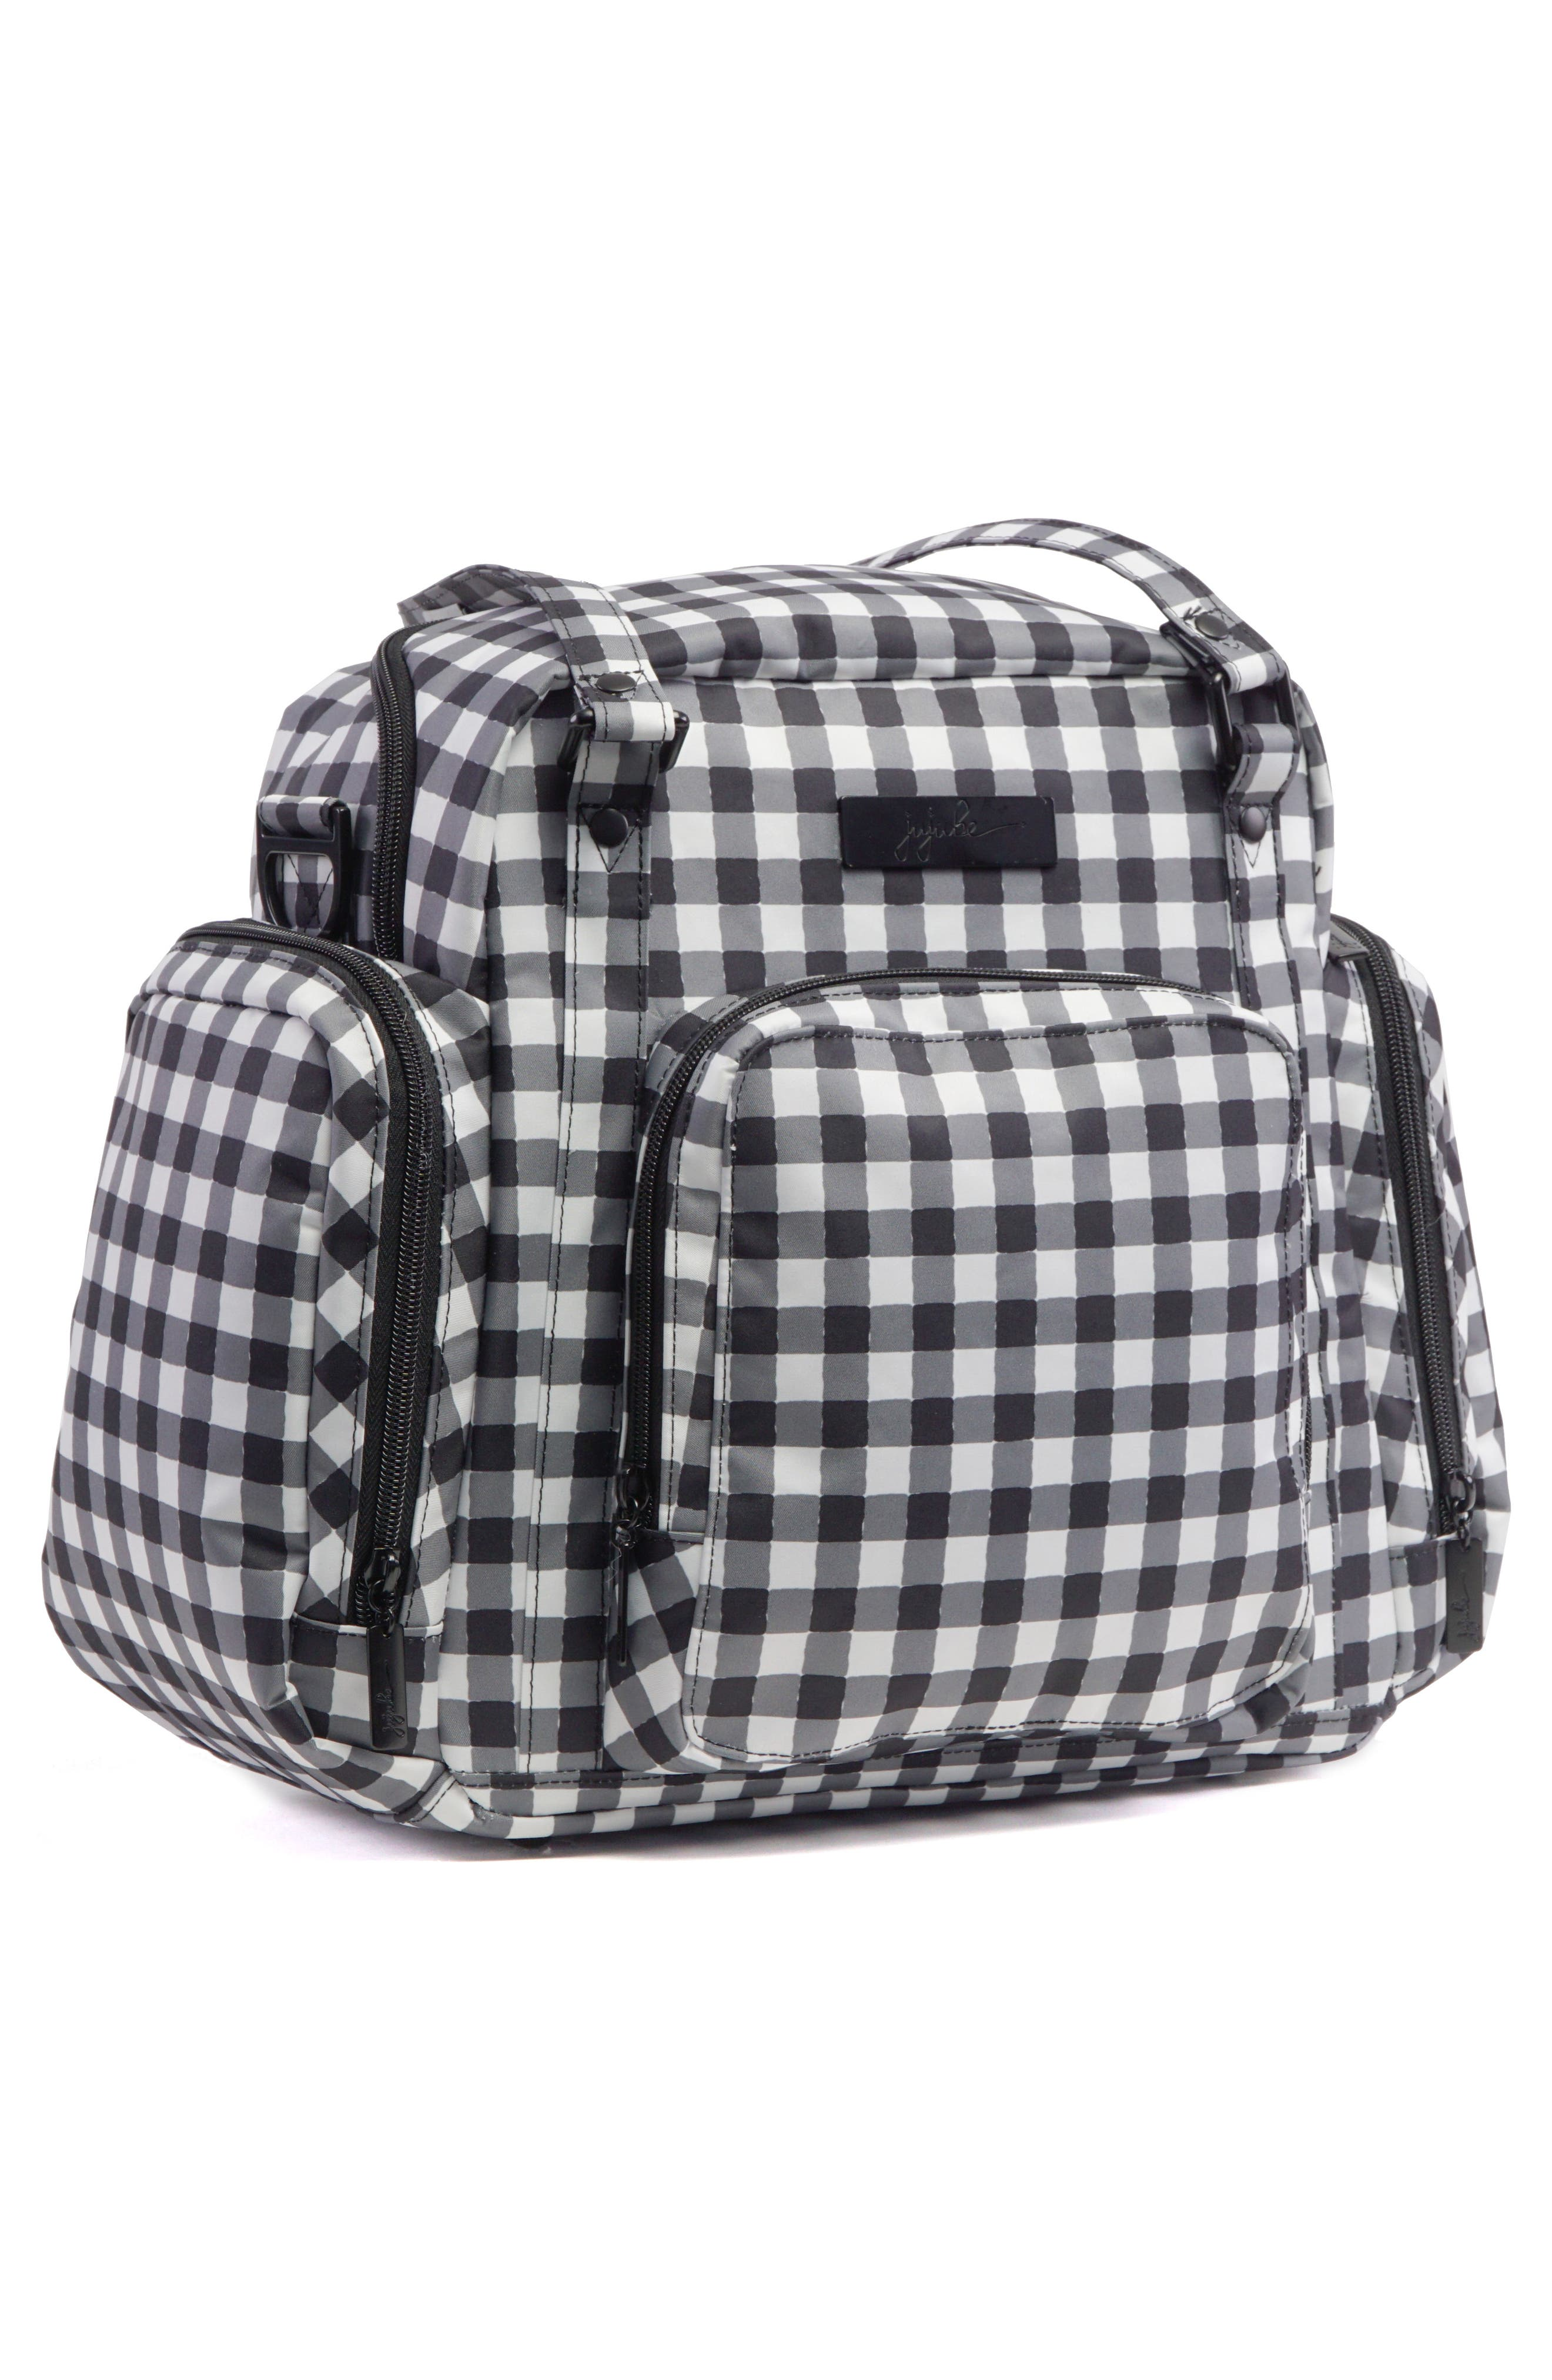 Onyx Be Supplied Pumping Bag,                             Alternate thumbnail 4, color,                             Gingham Style